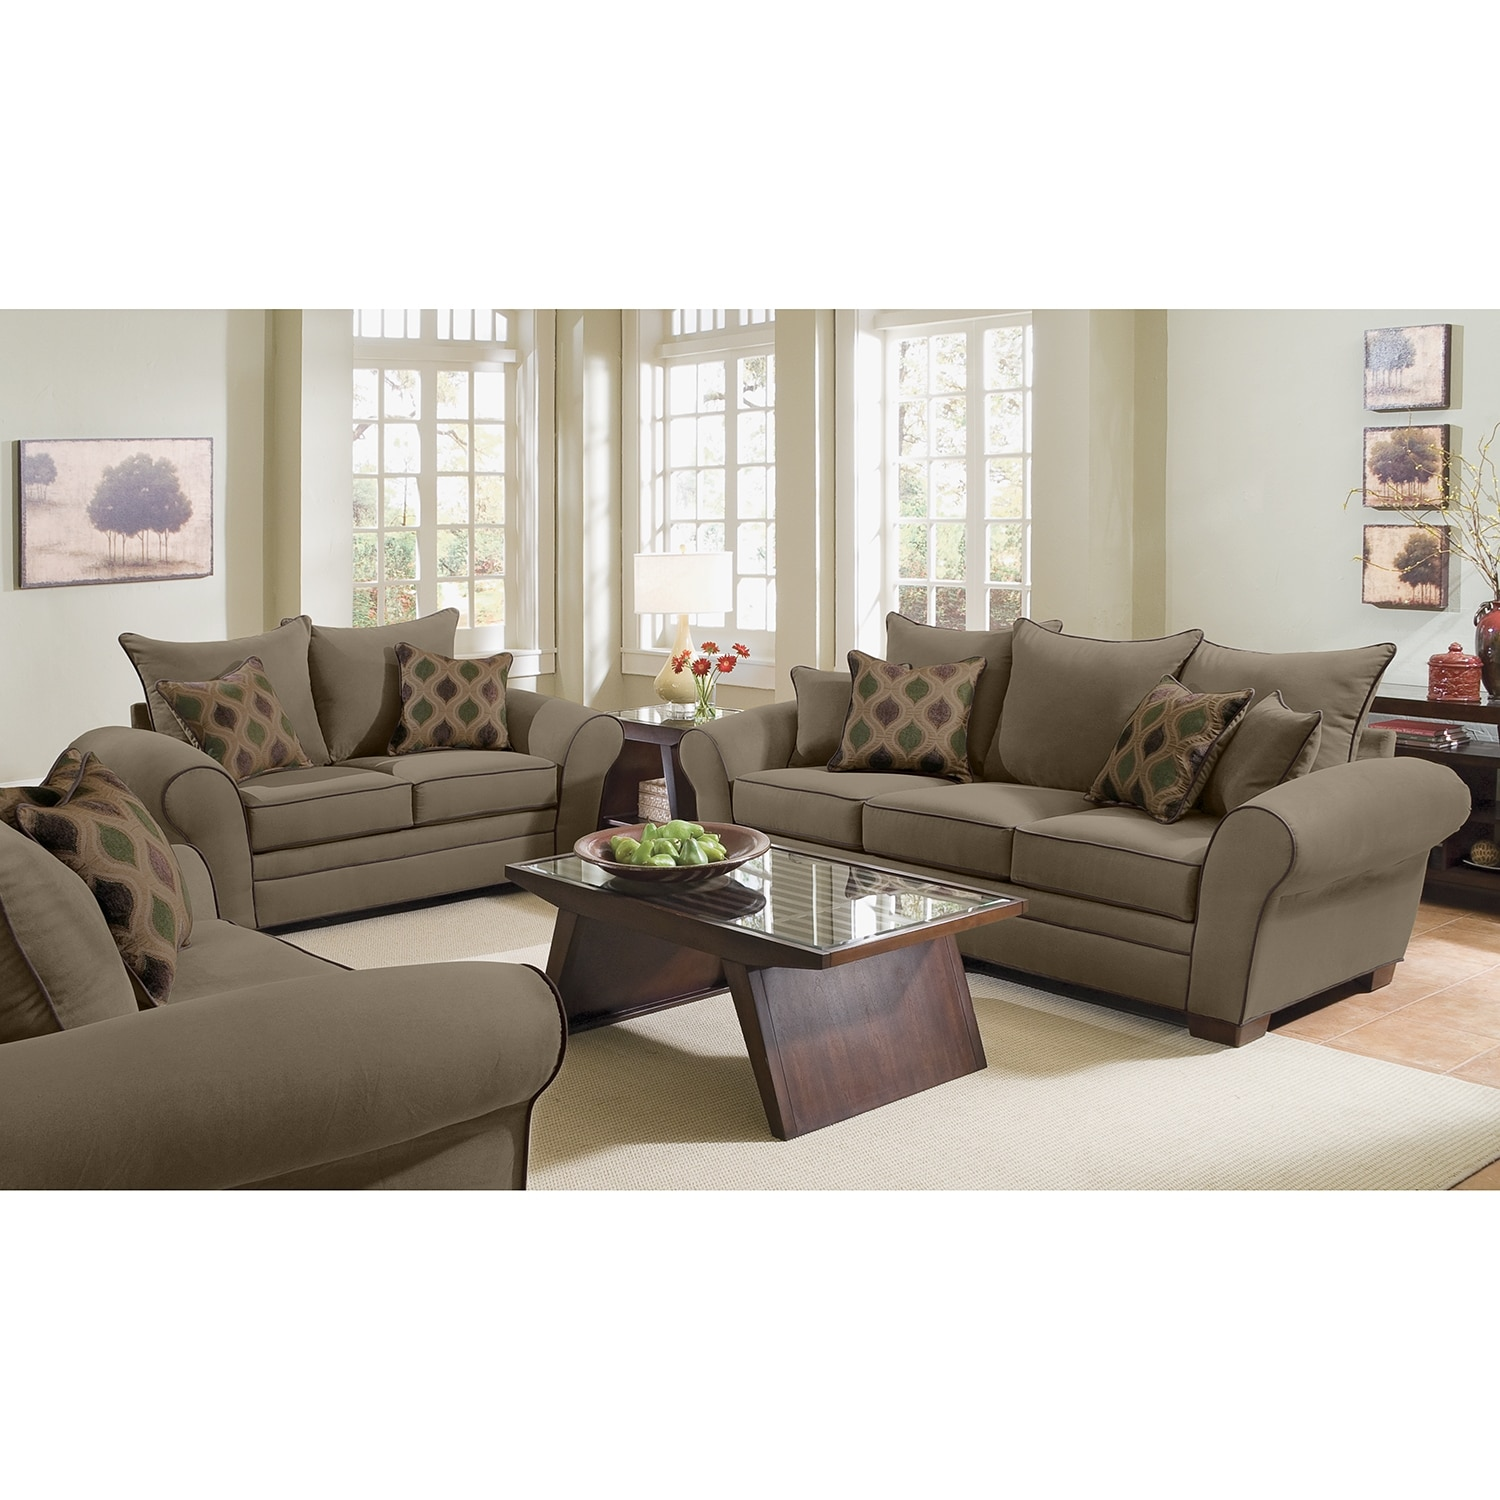 Rendezvous Sofa And Loveseat Set Olive Value City Furniture